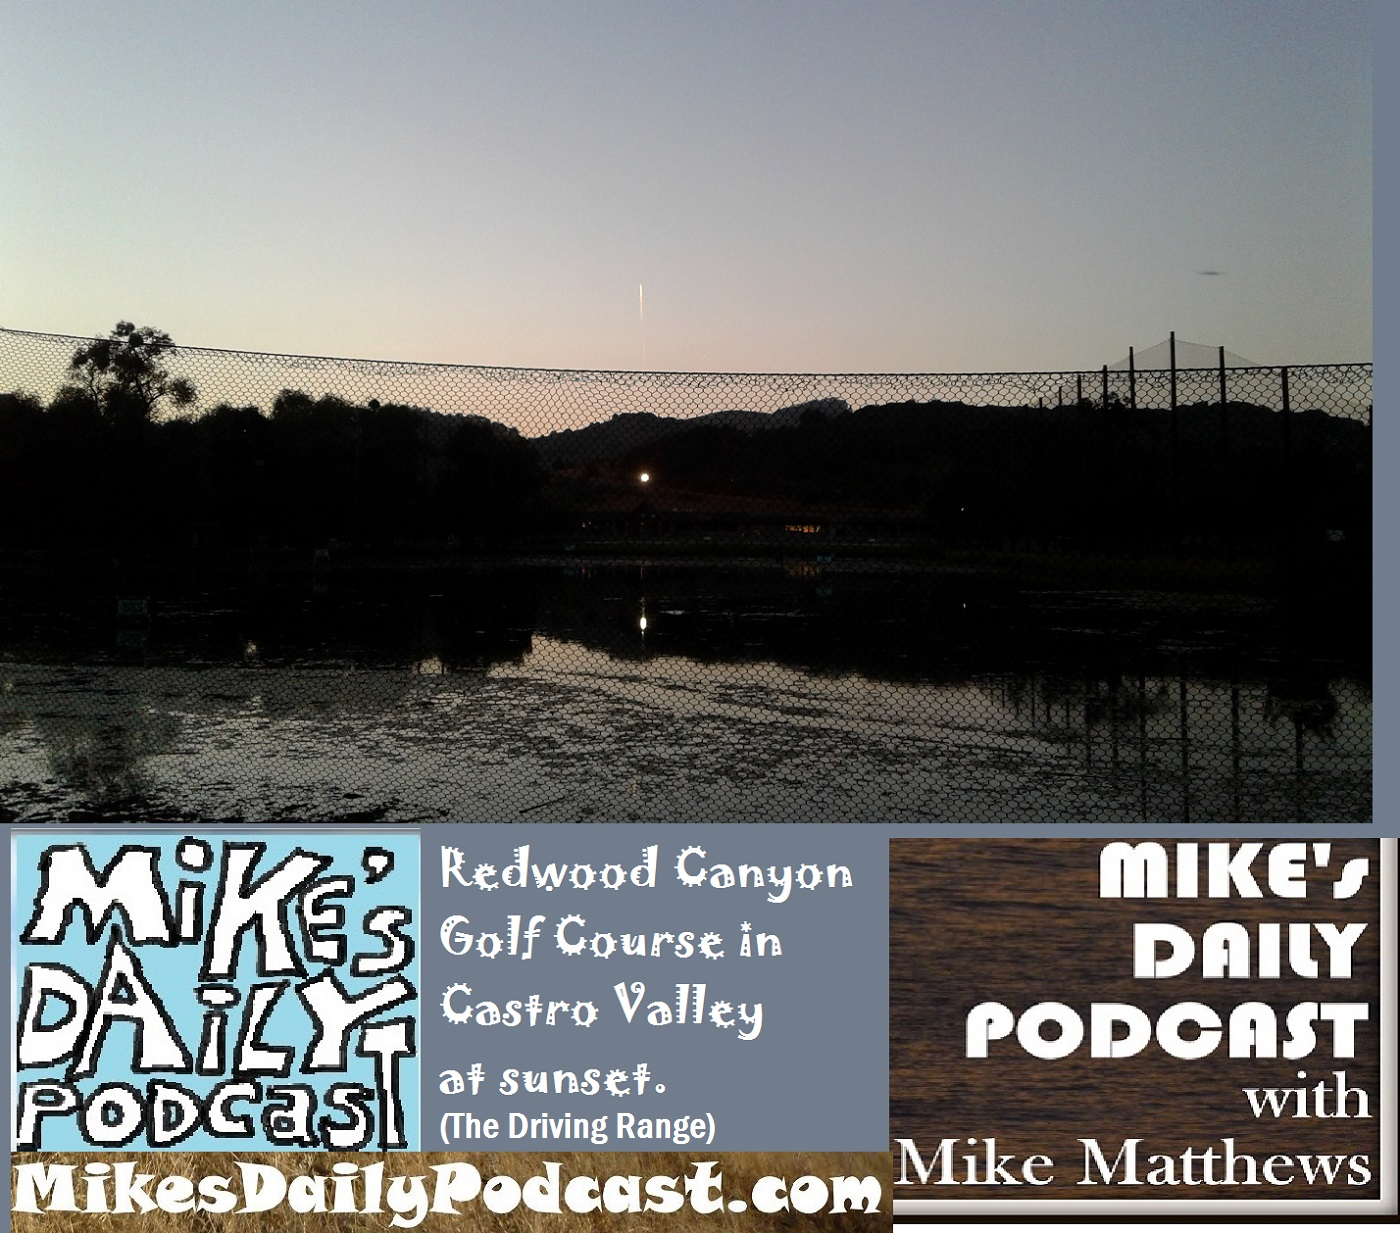 mikes-daily-podcast-1178-redwood-canyon-golf-course-castro-valley